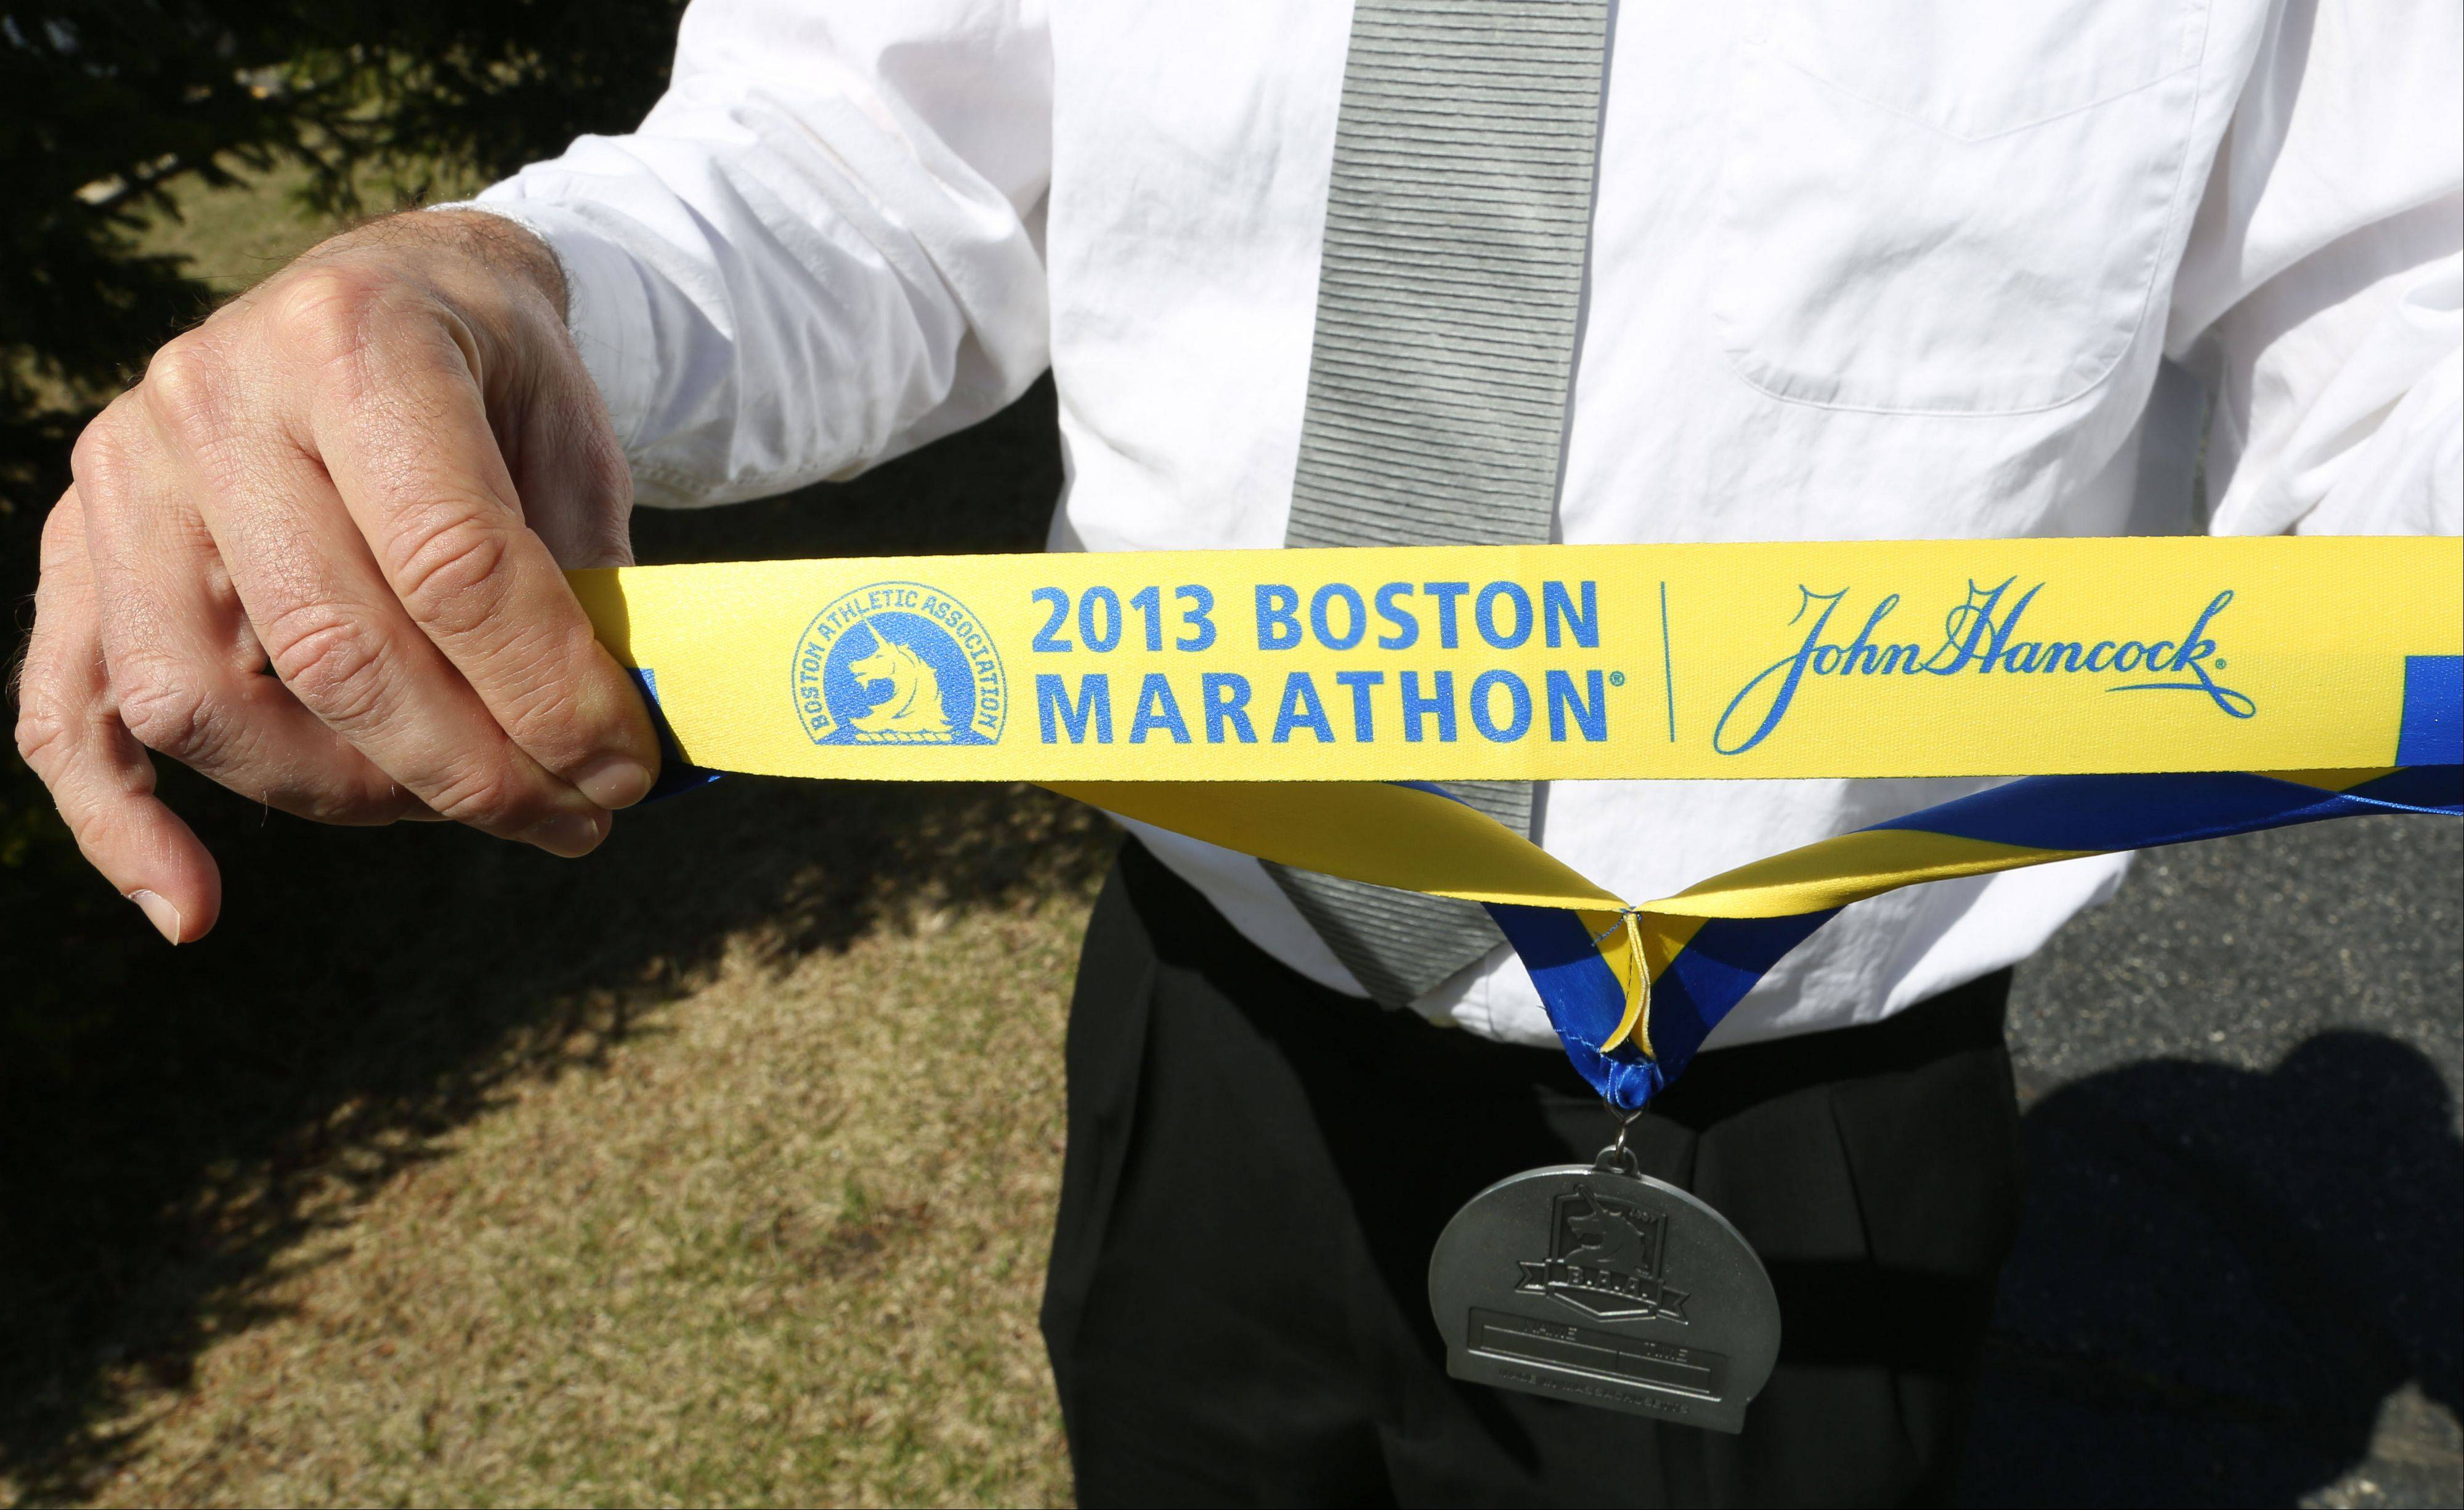 Hawthorn Woods resident Al Scaletta ran his 49th marathon Monday in Boston. He finished about 30 minutes before the explosions that killed three and injured about 170 people. Scaletta plans to run the Boston Marathon again next year.